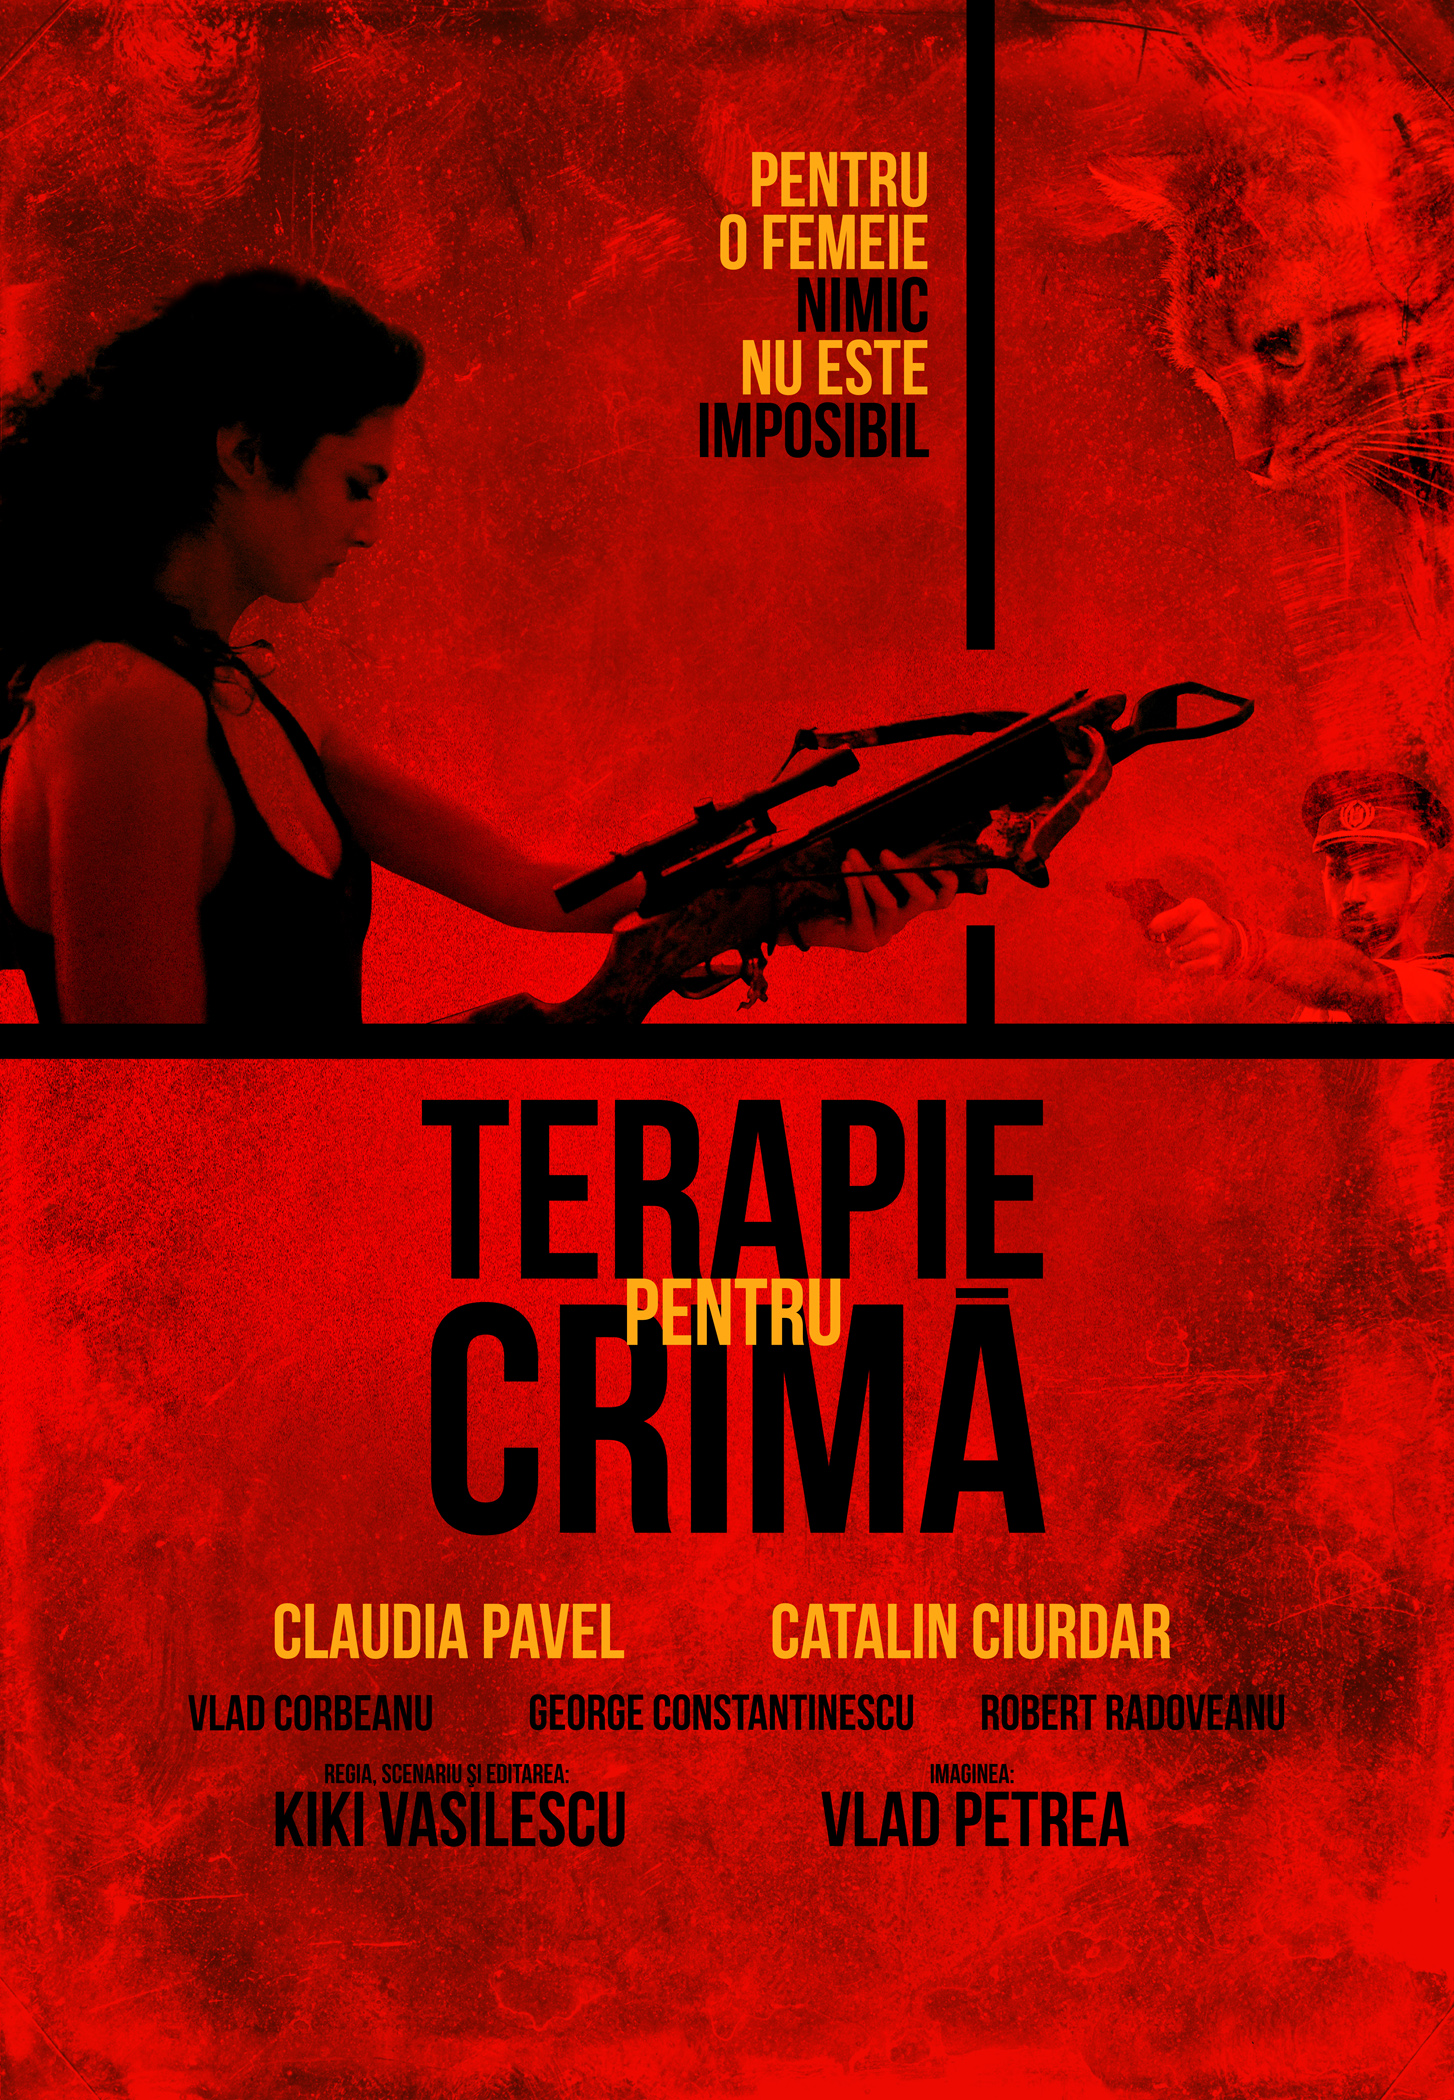 http://static.cinemagia.ro/img/db/movie/59/01/52/terapie-pentru-crima-913696l.jpg